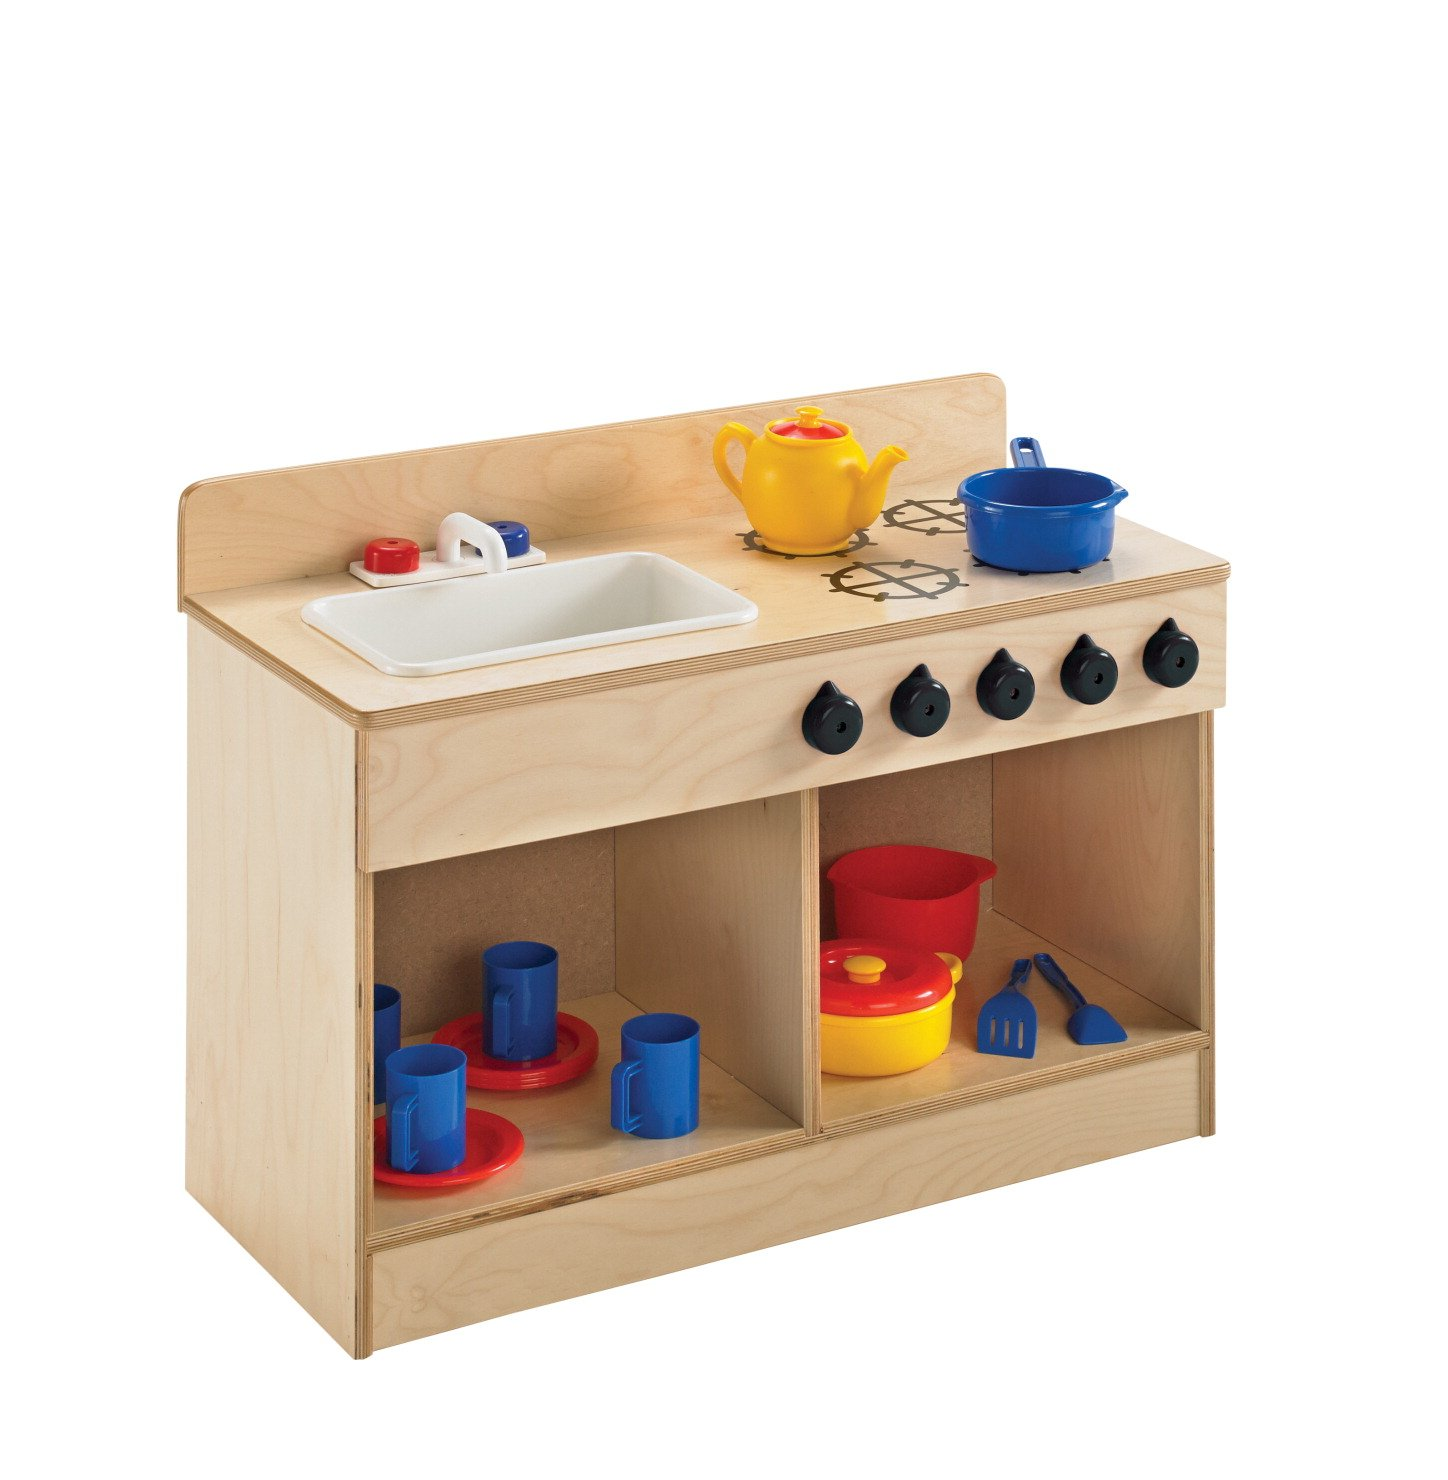 Childcraft 1491196 Toddler Sink and Stove Combo, 21.5'' Height, 13.38'' Width, 29.5'' Length, Natural Wood by Childcraft (Image #6)